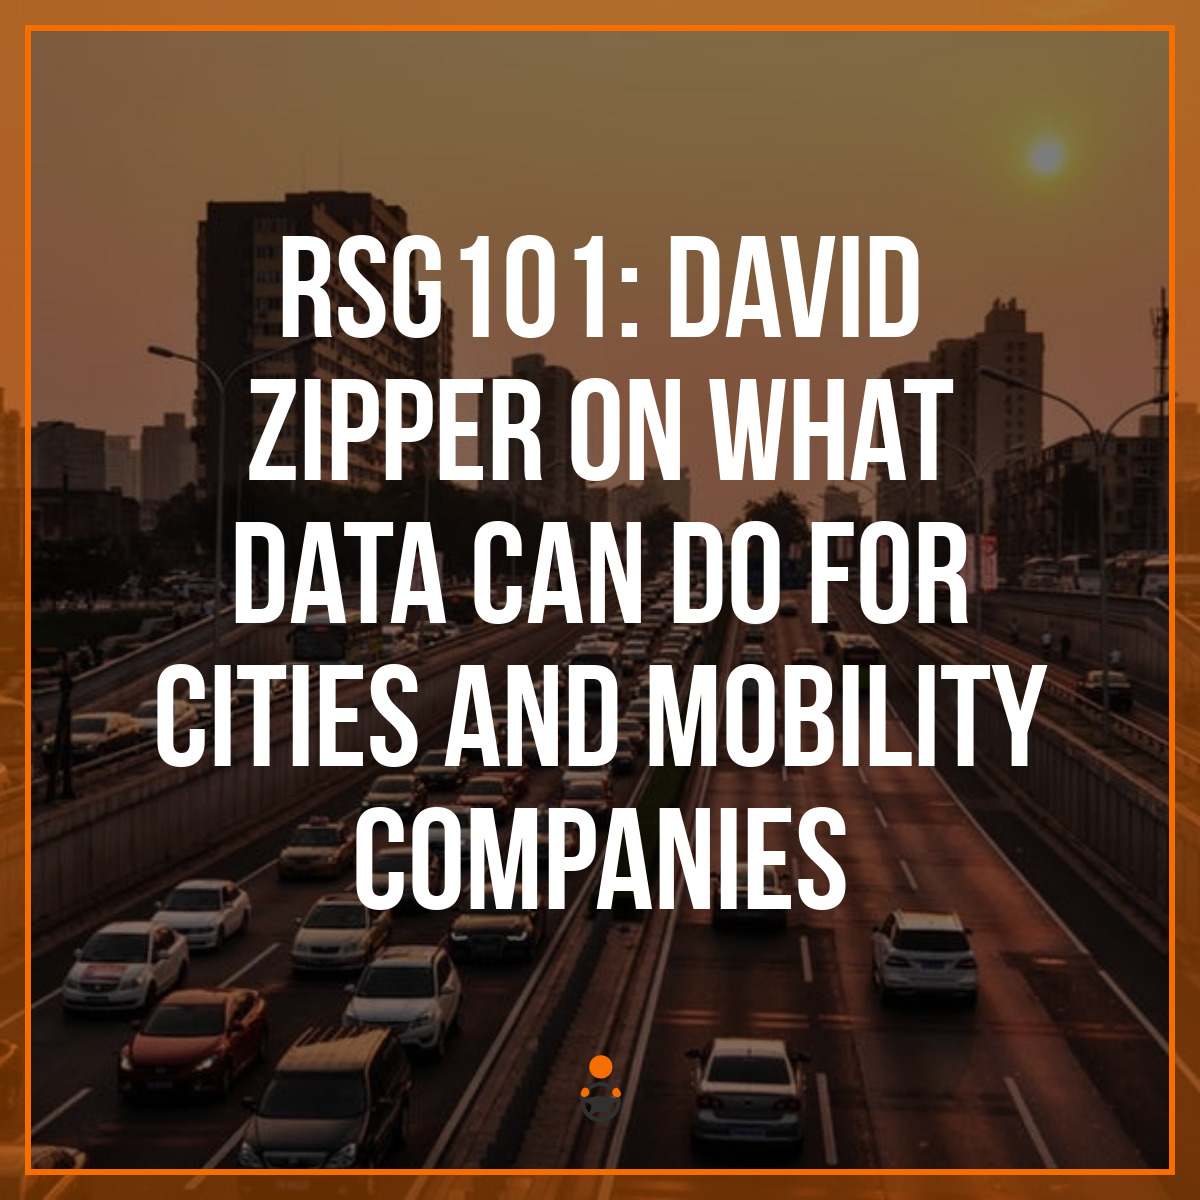 RSG101: David Zipper on What Data Can do for Cities and Mobility Companies